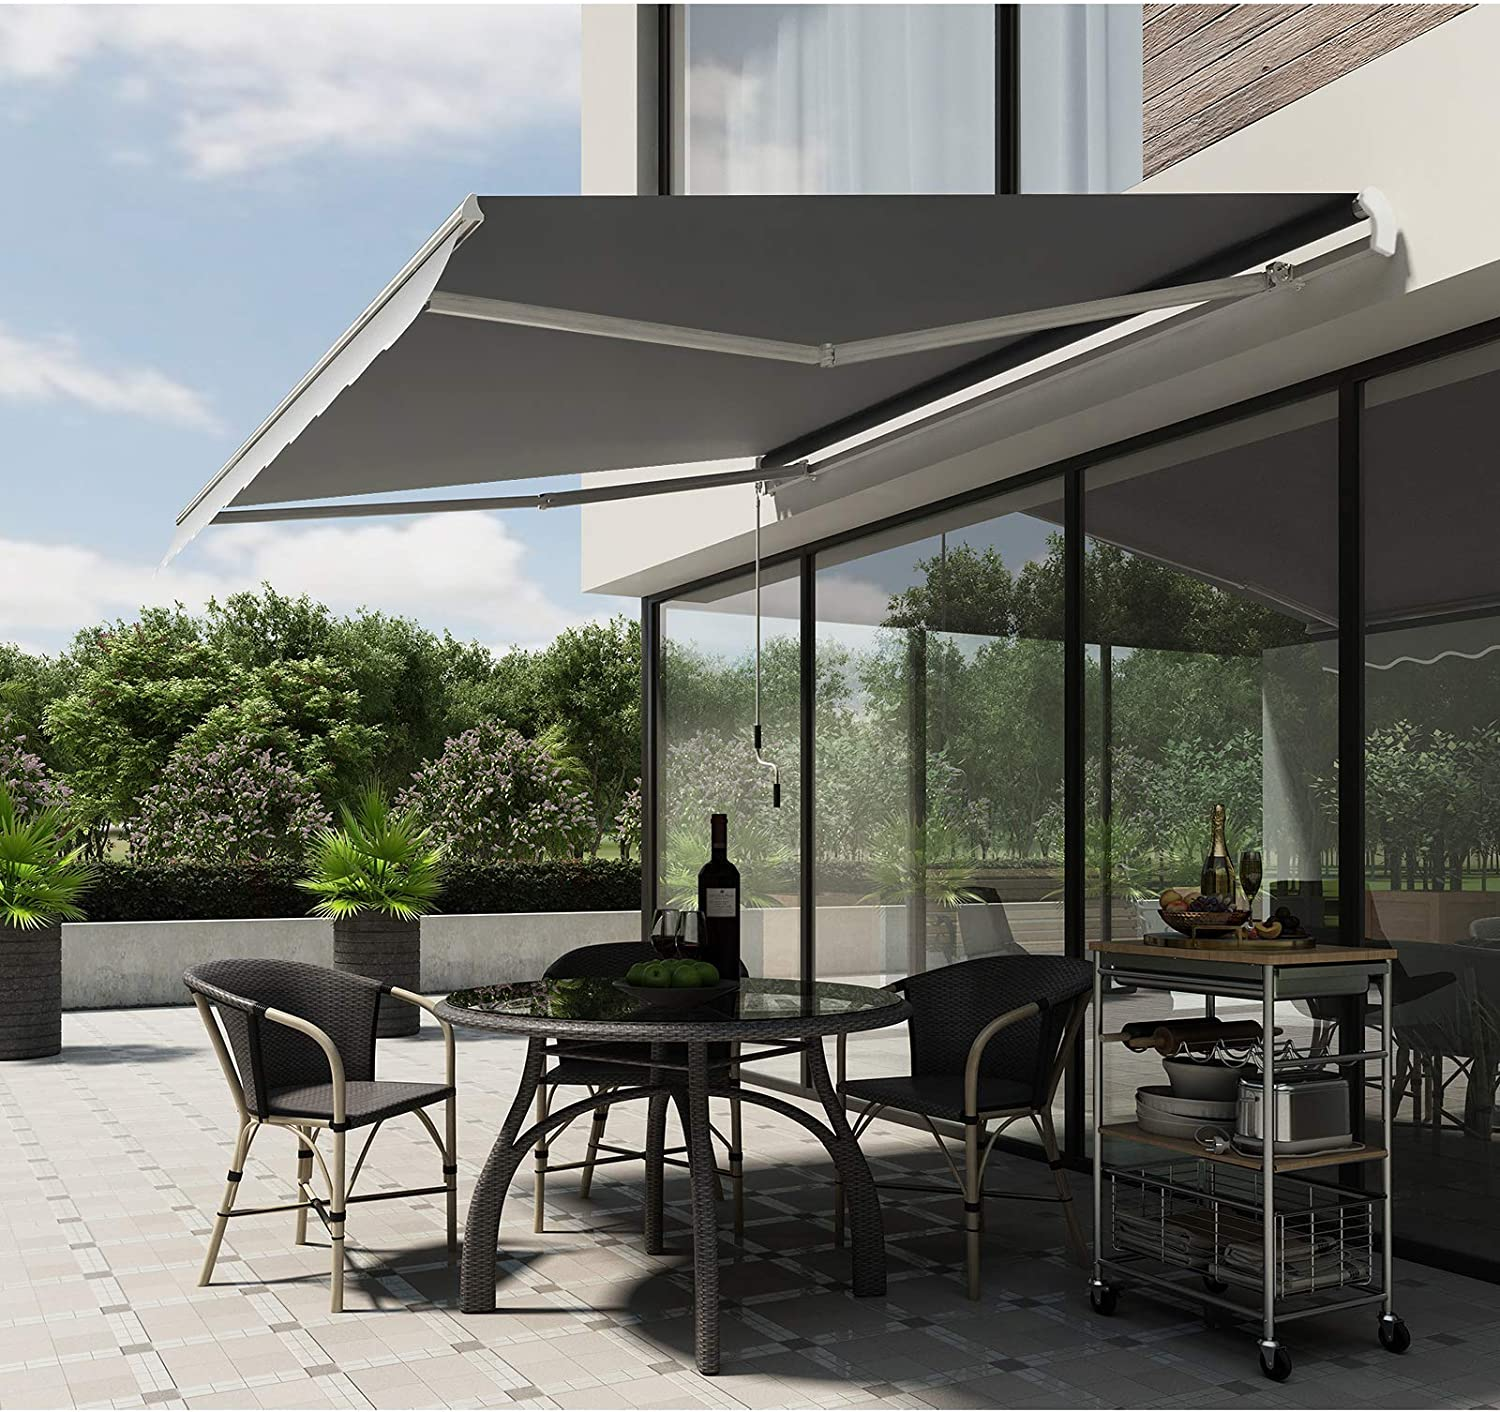 SONGMICS GRA35GY - Toldo con manivela (350 x 250 cm), Color Gris: Amazon.es: Jardín